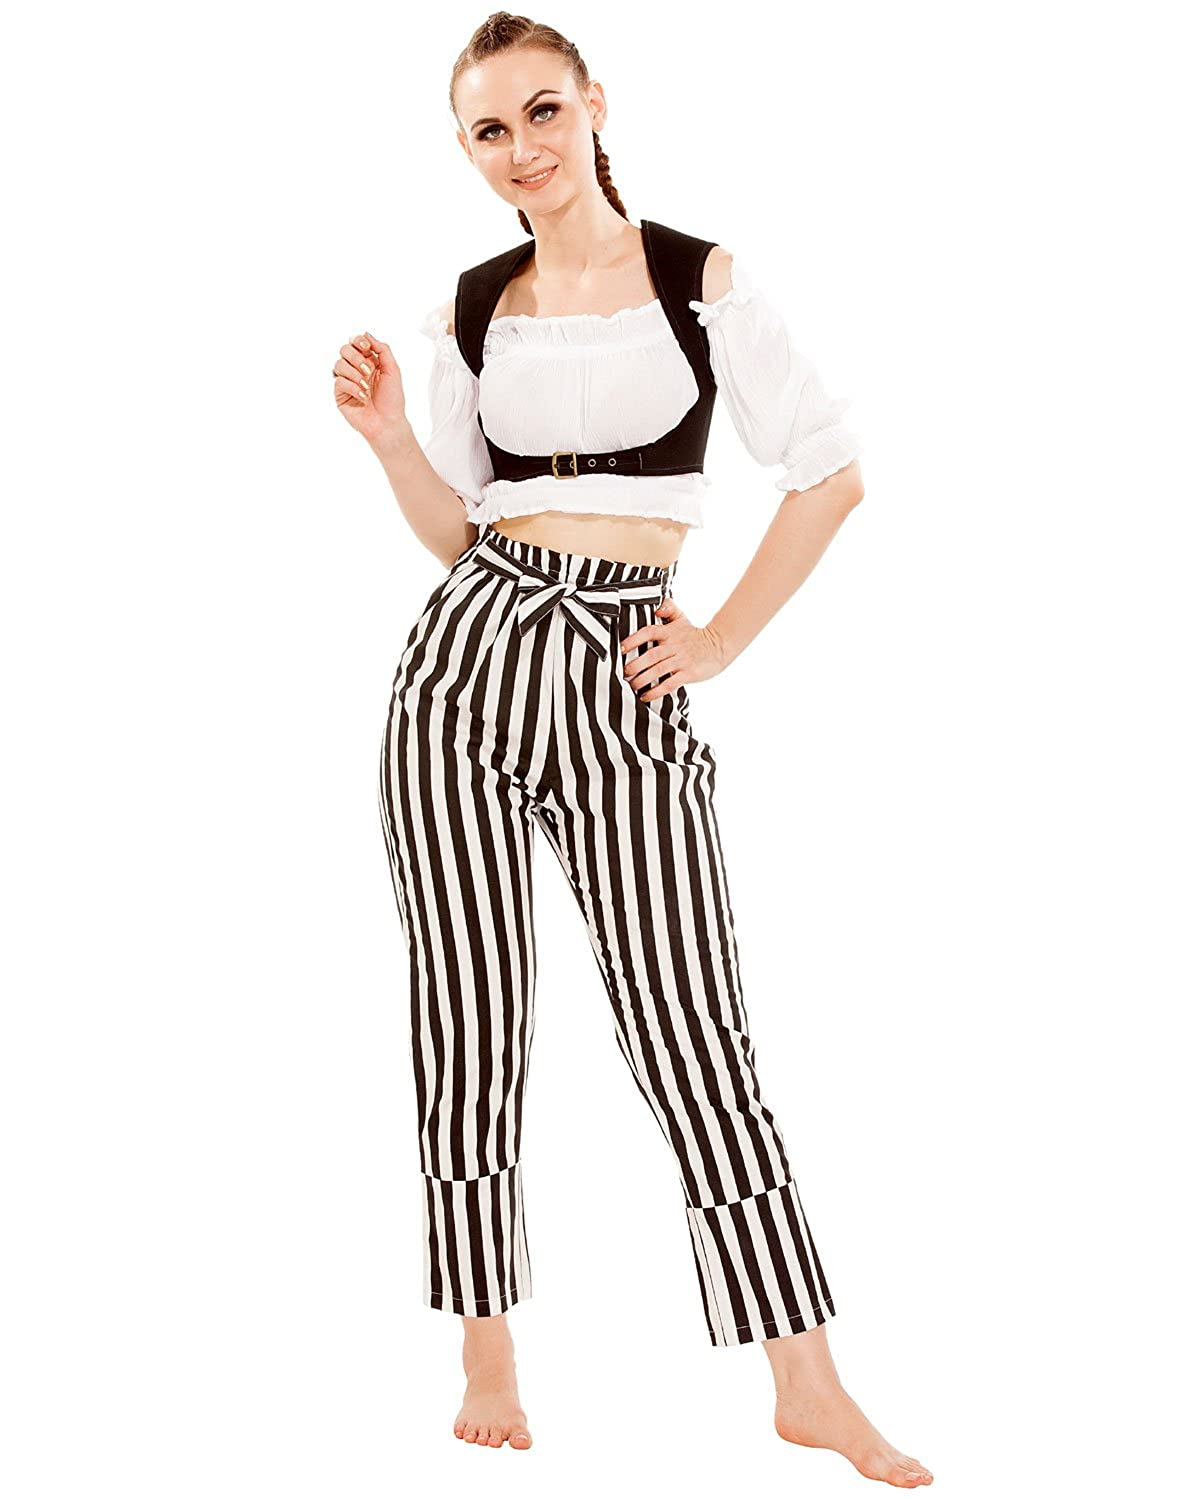 Women's Pirate Wench Cotton Black & White Striped Self-Tie Cosplay Costume Pants by ThePirateDressing - DeluxeAdultCostumes.com